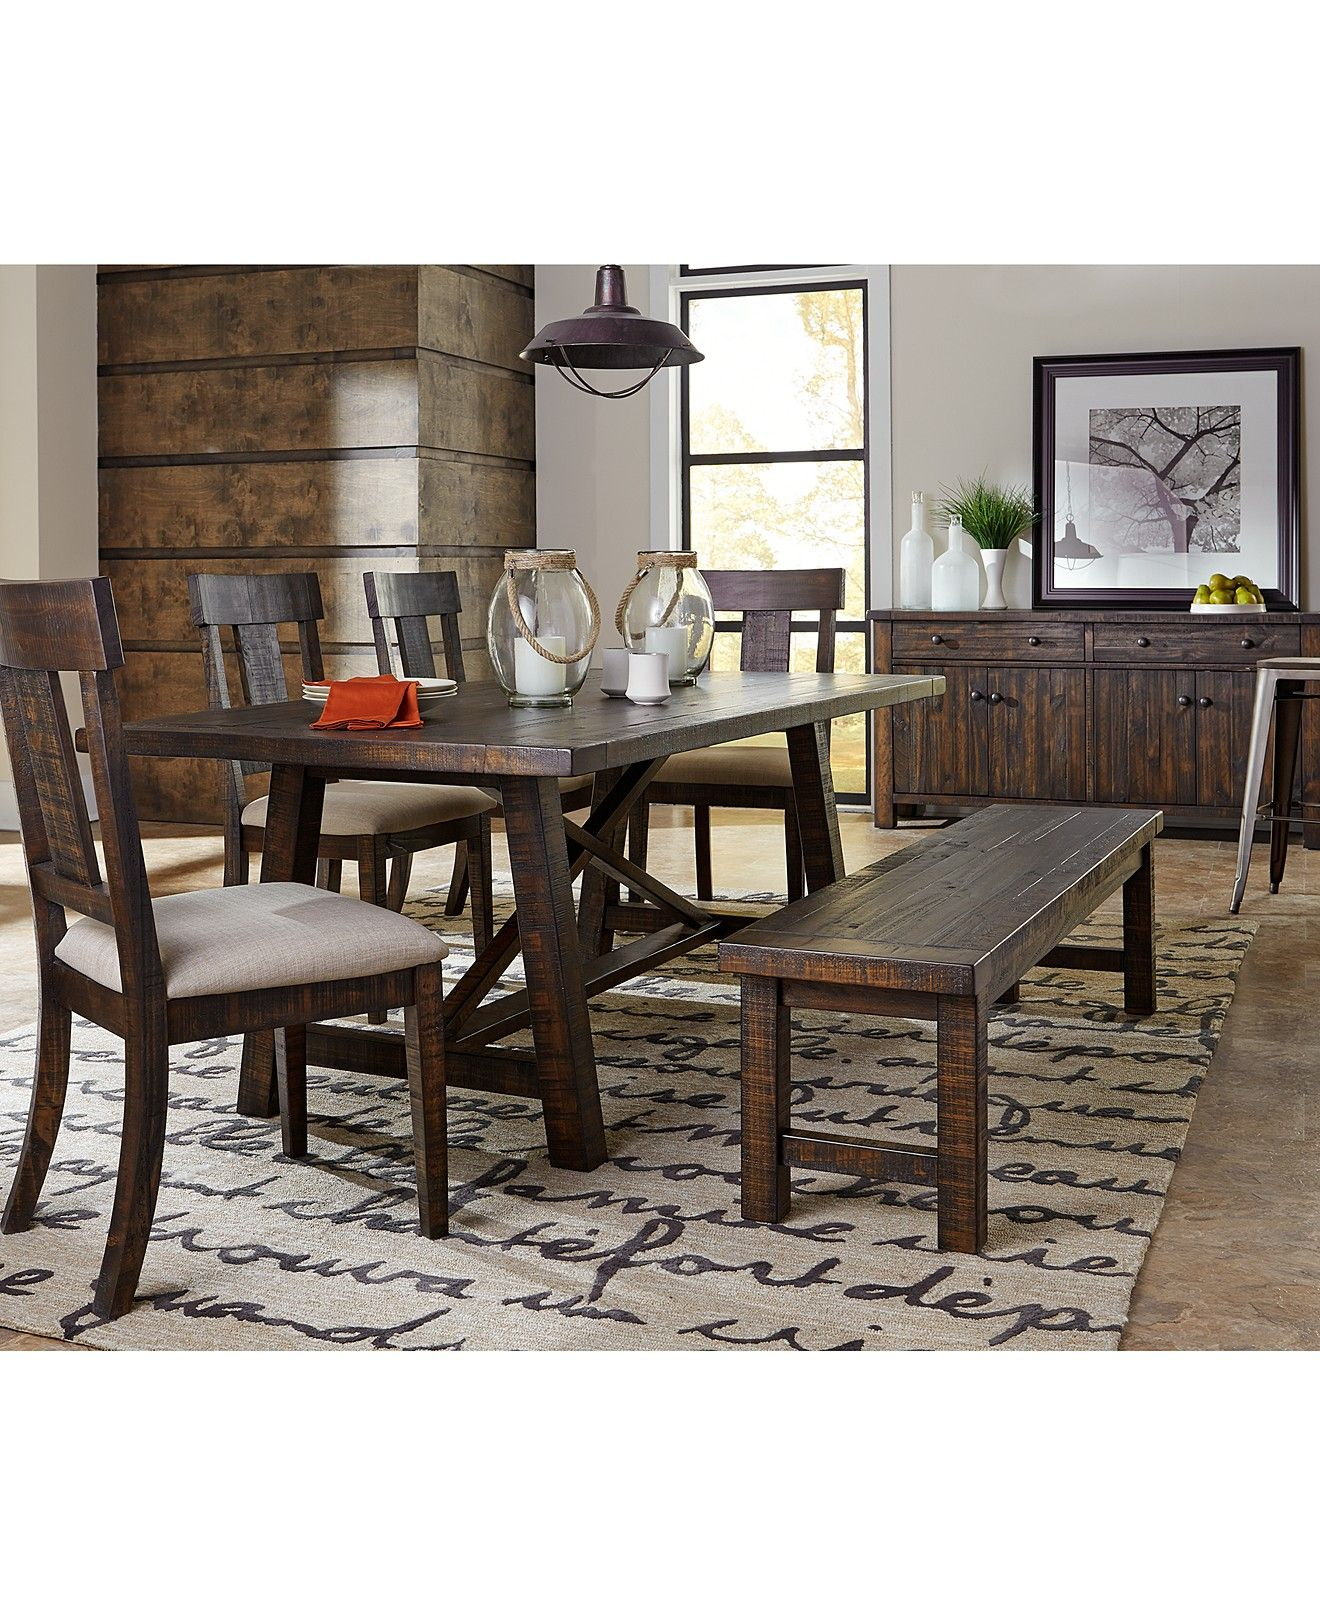 Www Macyfurniture: Ember Dining Room Furniture Collection